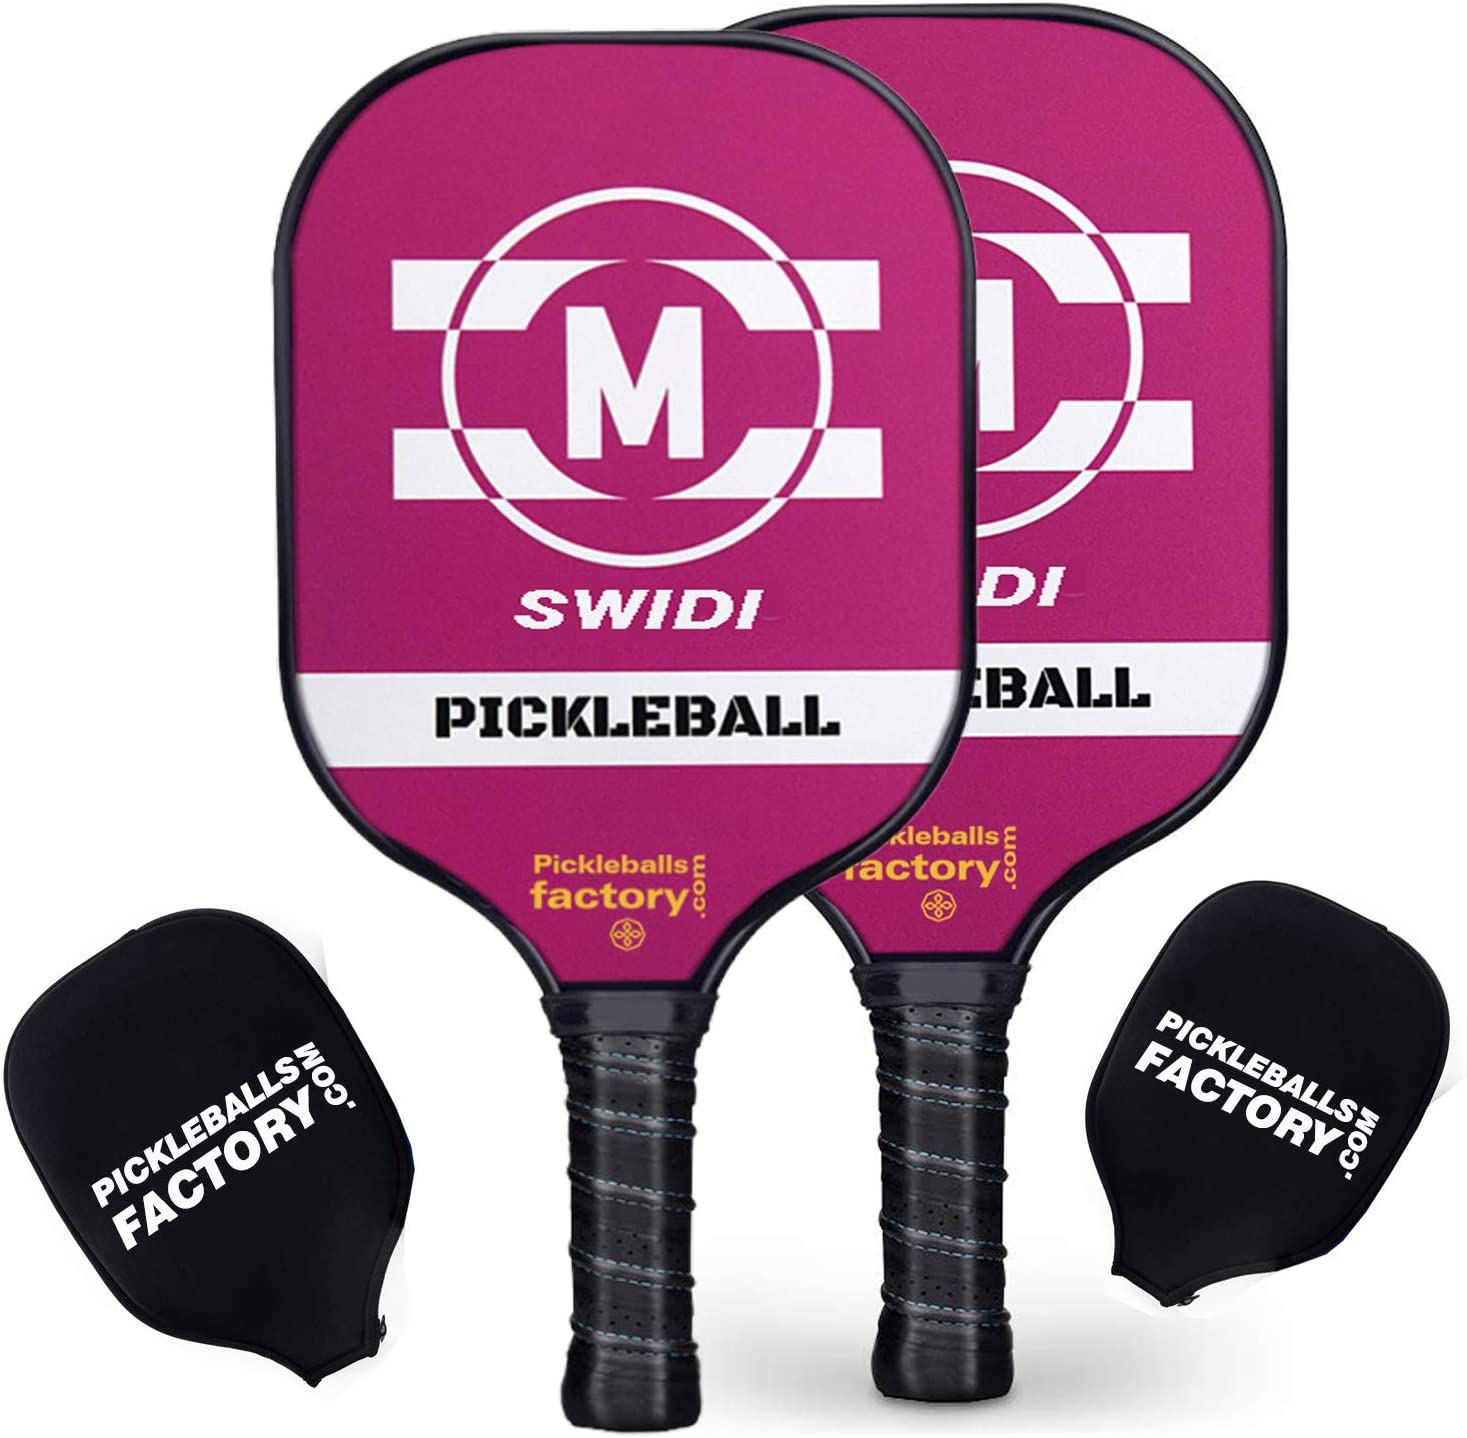 Pickleball Paddle Set, Pickleball Set, Pickleball Paddles, Pickleball Game Set 2 Paddles M-Pick Pickle Ball Set for Pro, Usapa Approved, Light Weight Outdoor Indoor